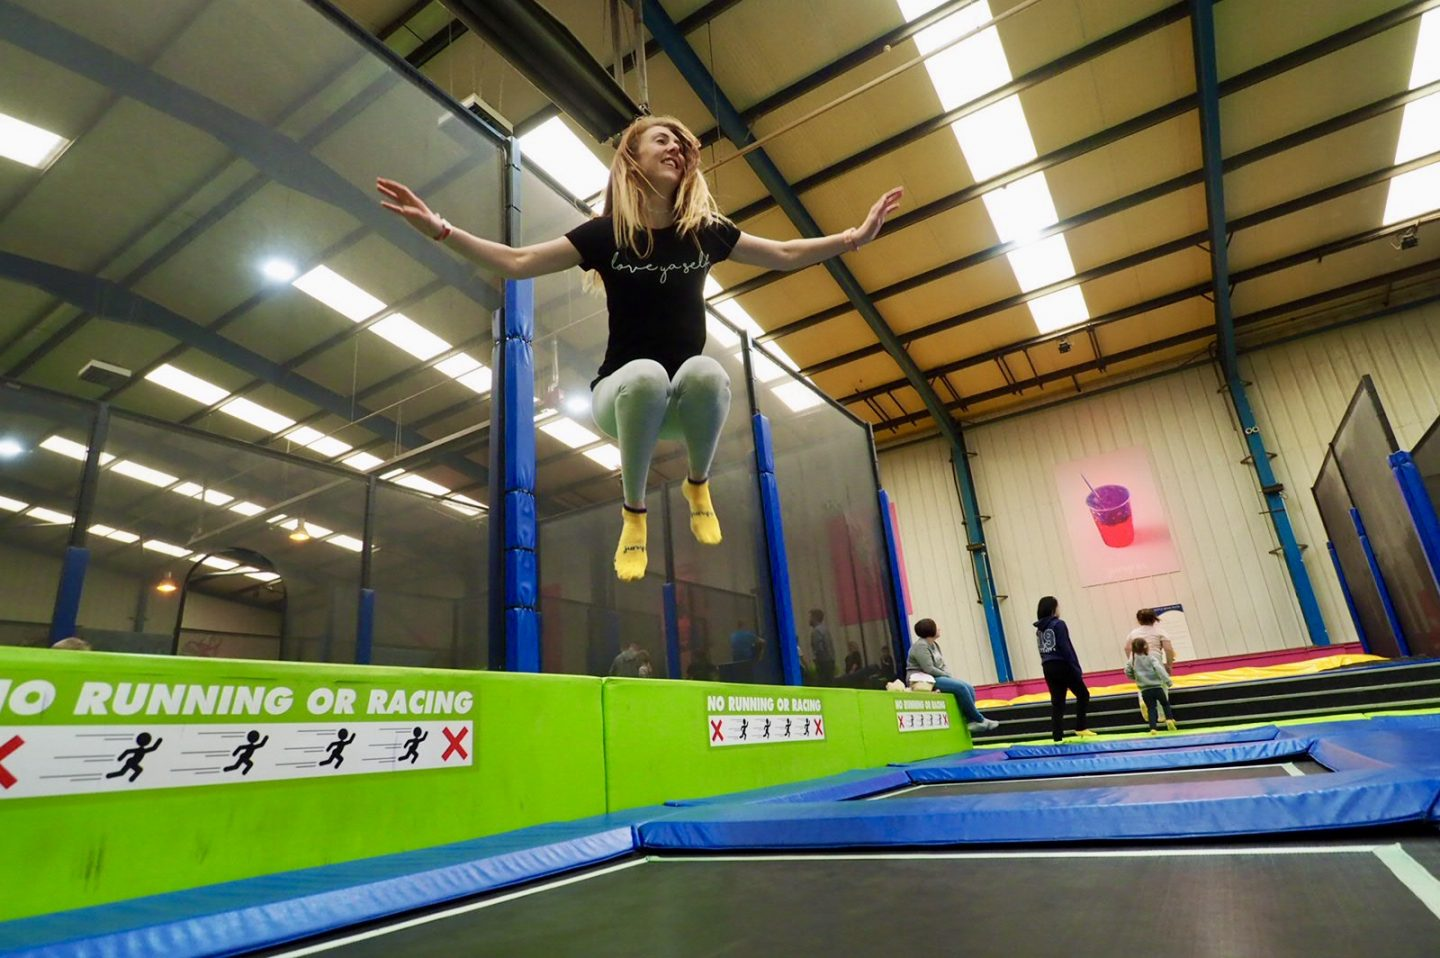 red head jumping high on trampoline